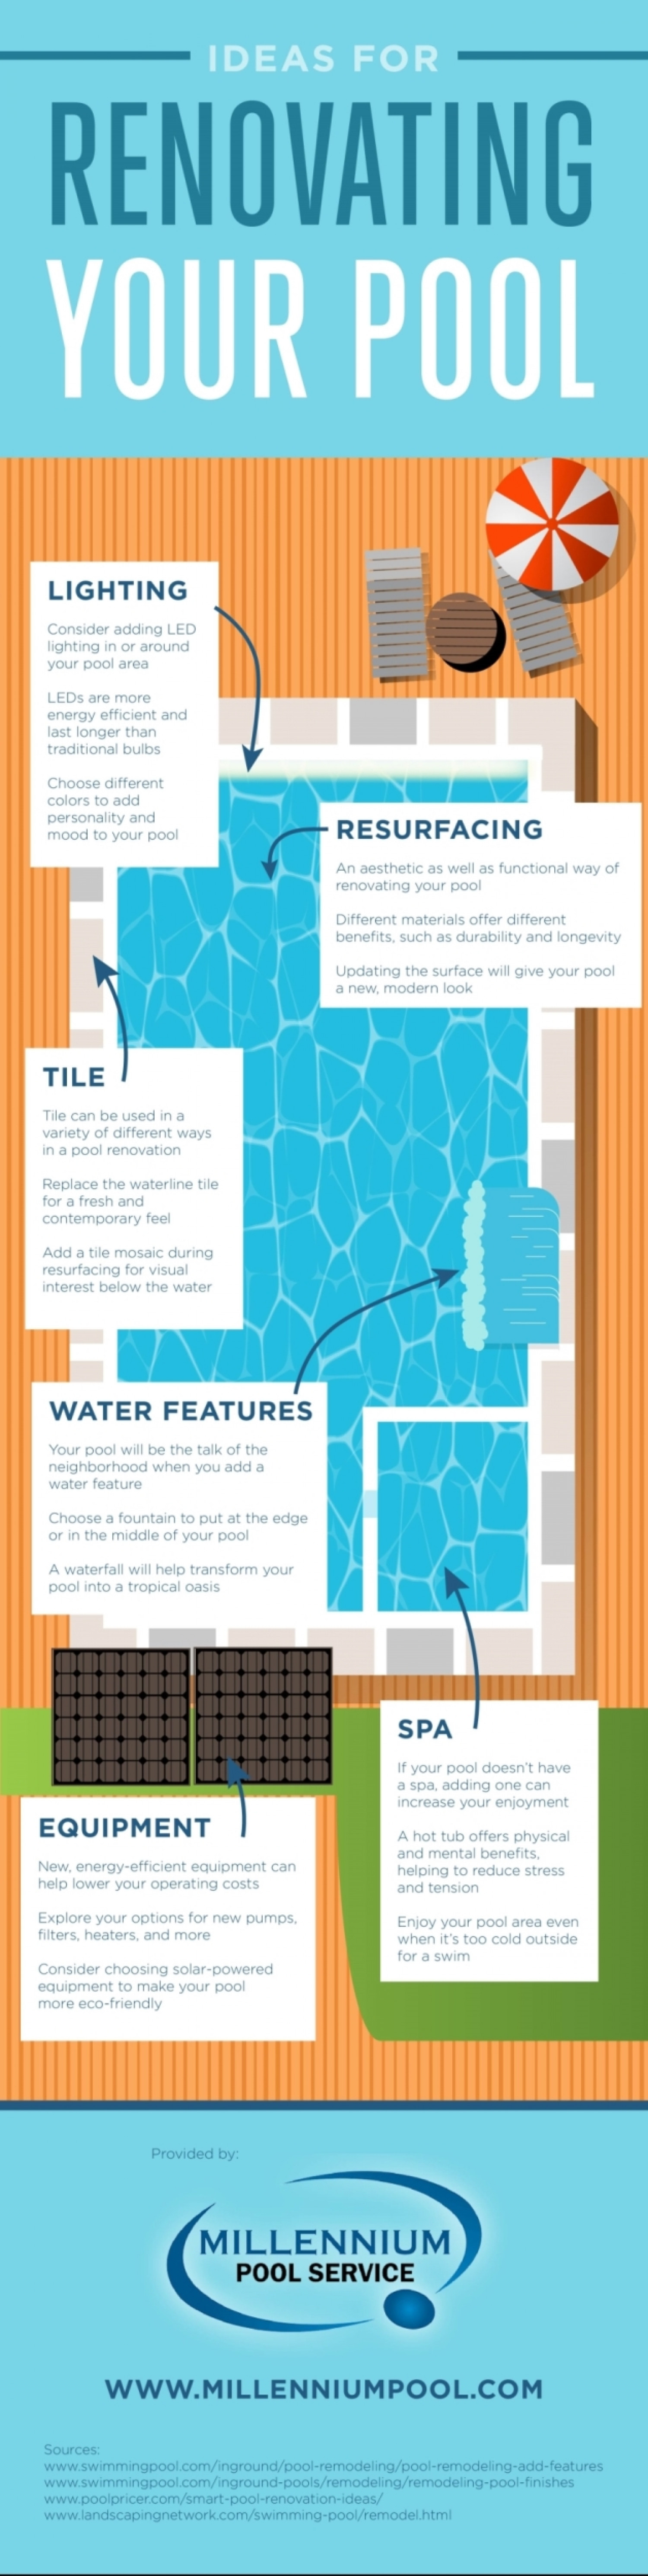 Ideas for Renovating Your Pool  Infographic